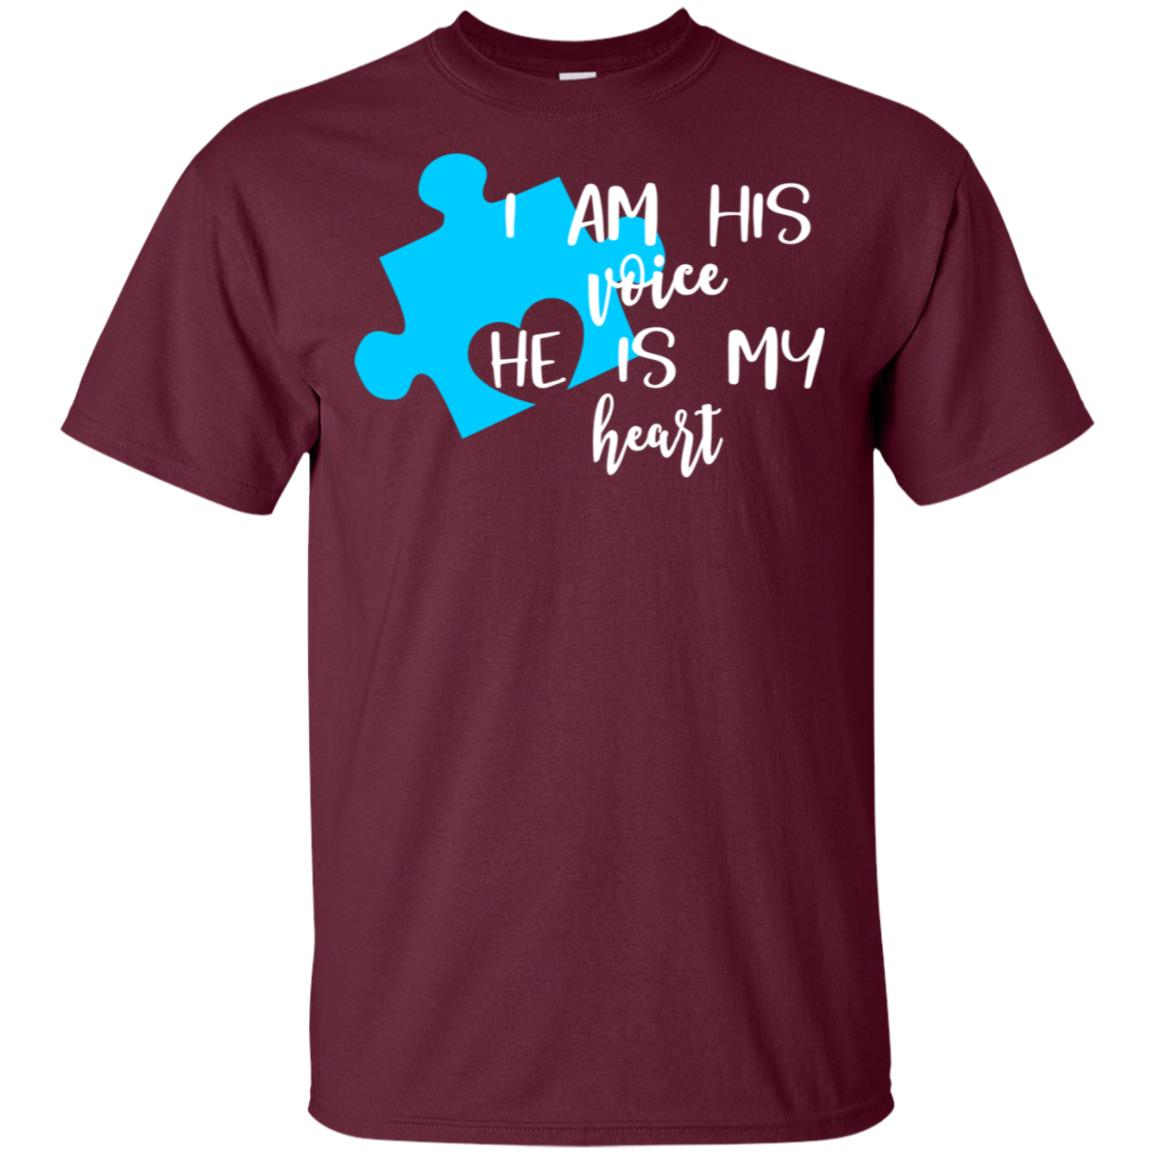 I Am His Voice He is My Heart Autism Tee Unisex Short Sleeve